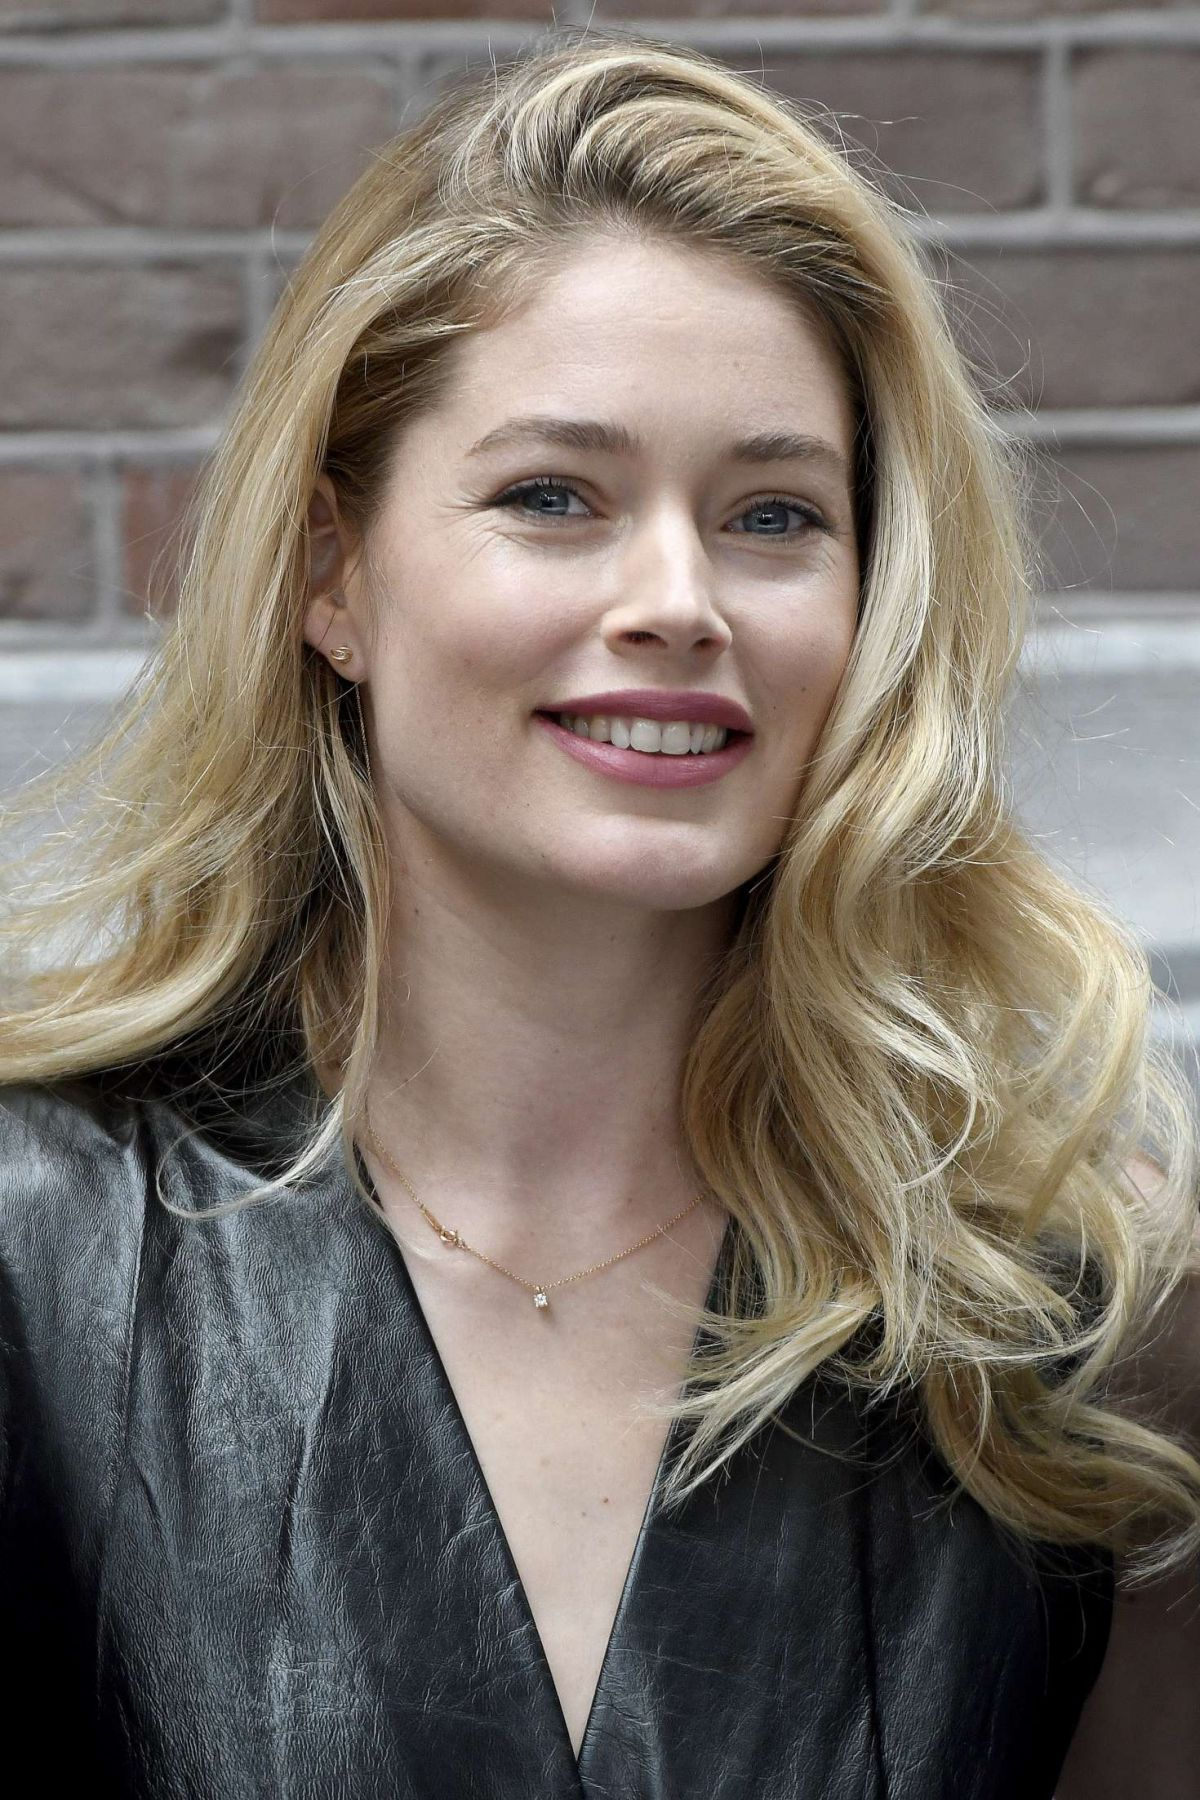 DOUTZEN KROES at Vogue Issue Lounge in Amsterdam 02/02/2017